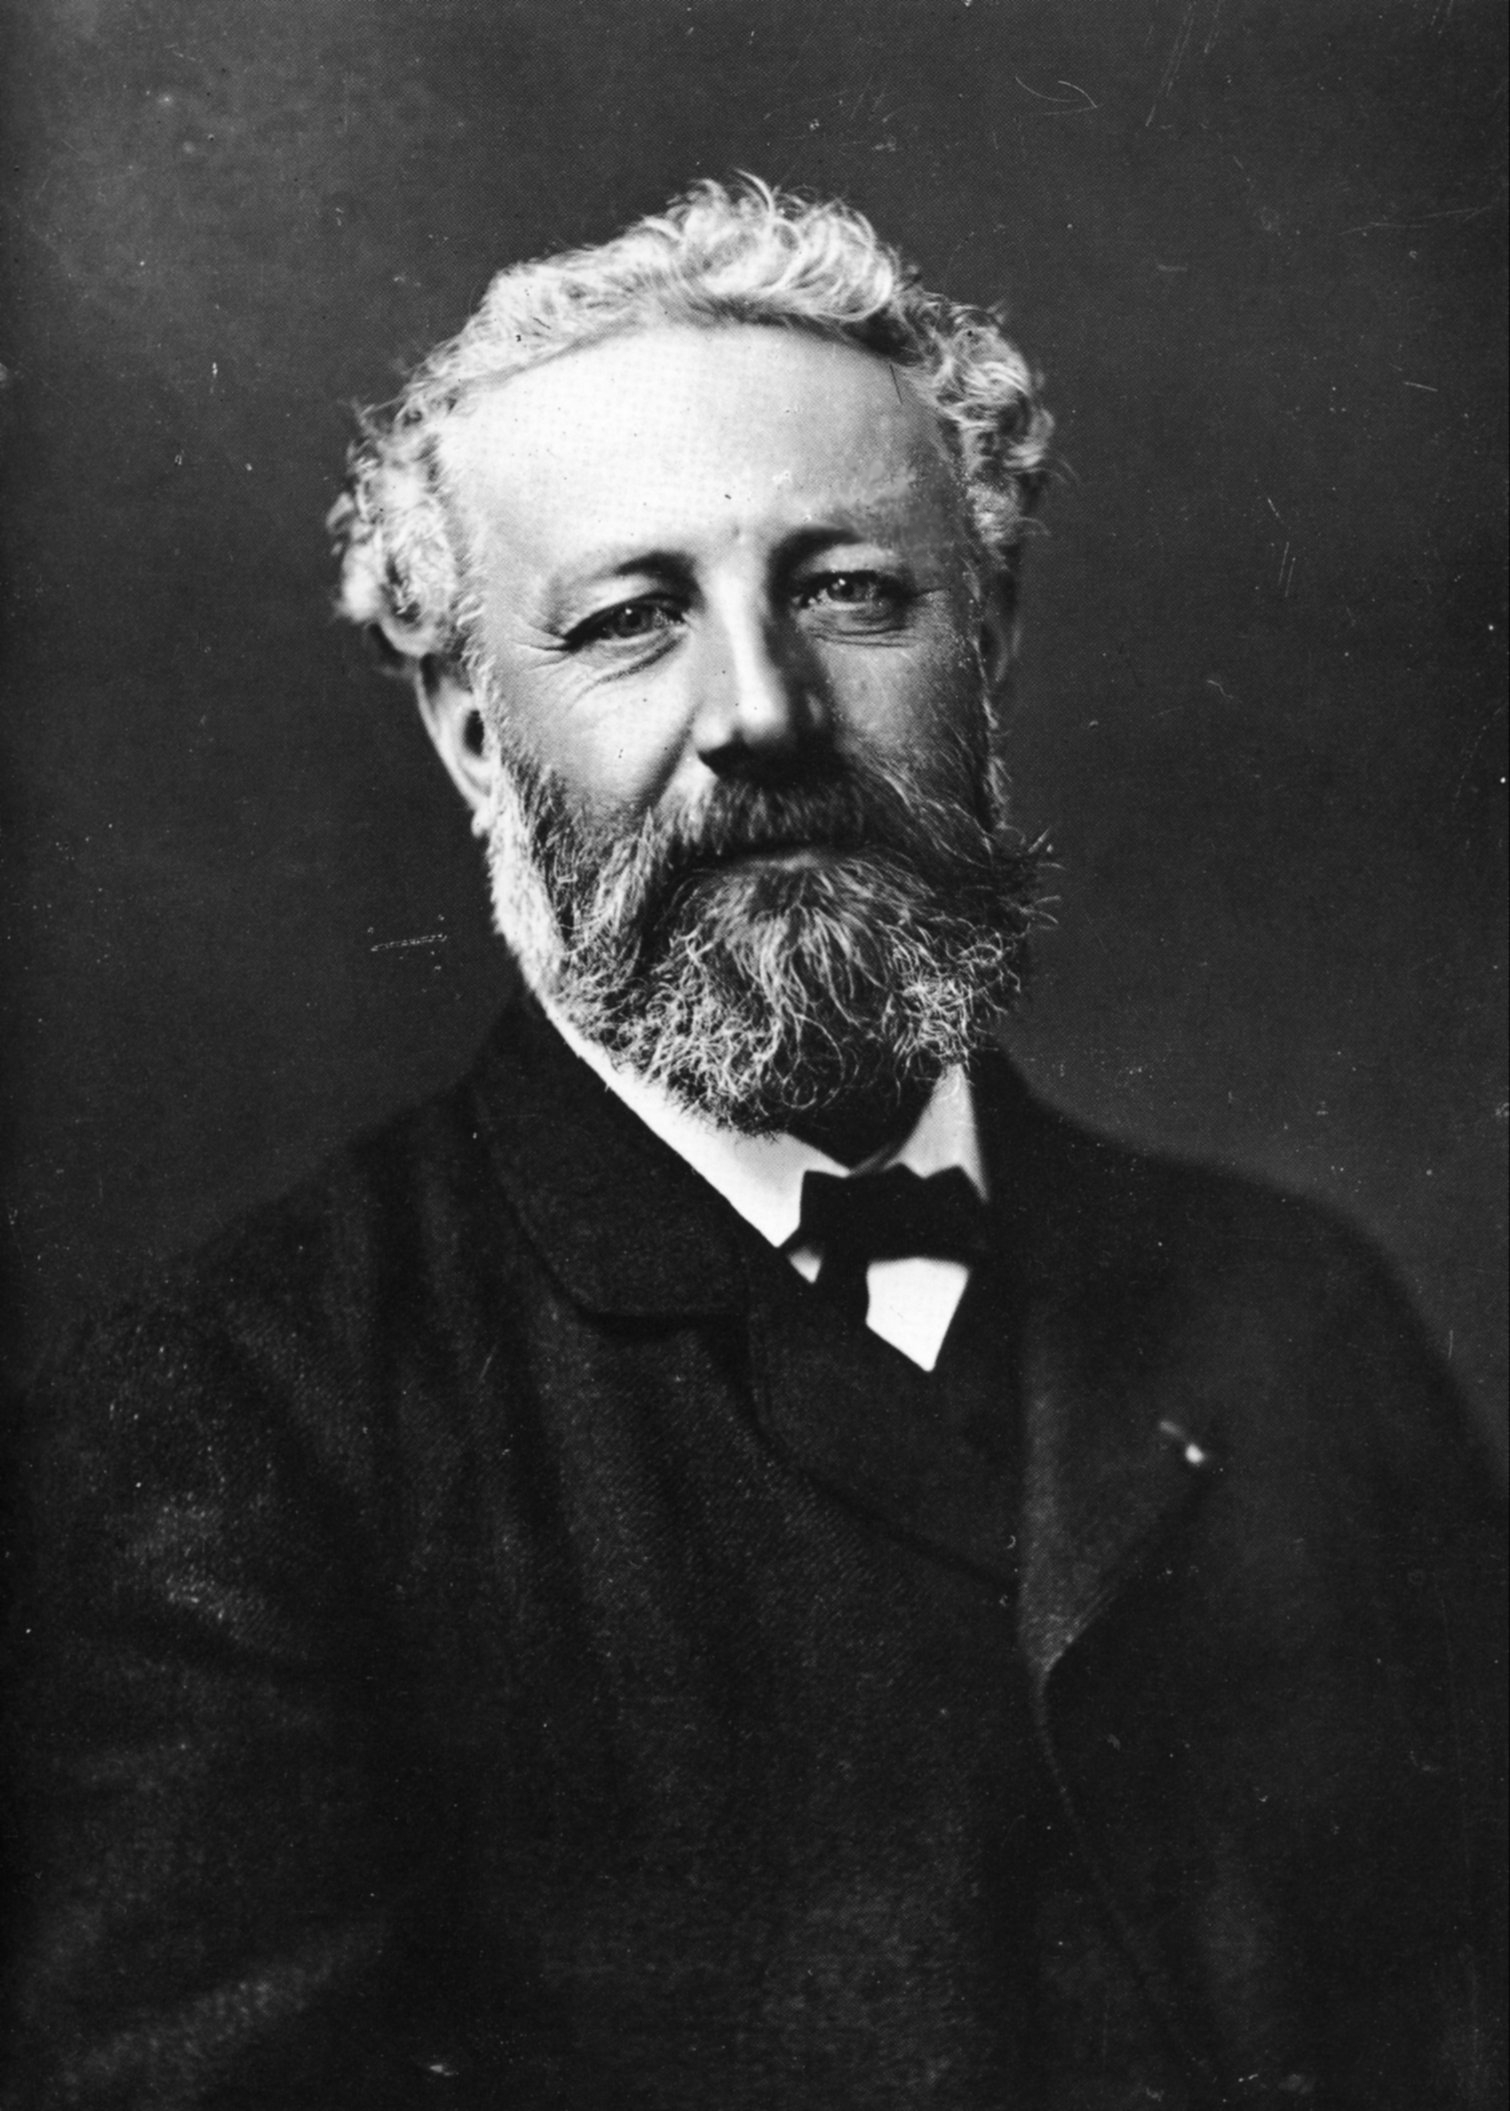 Column: Met een Franse slag. Jules Verne in science fiction